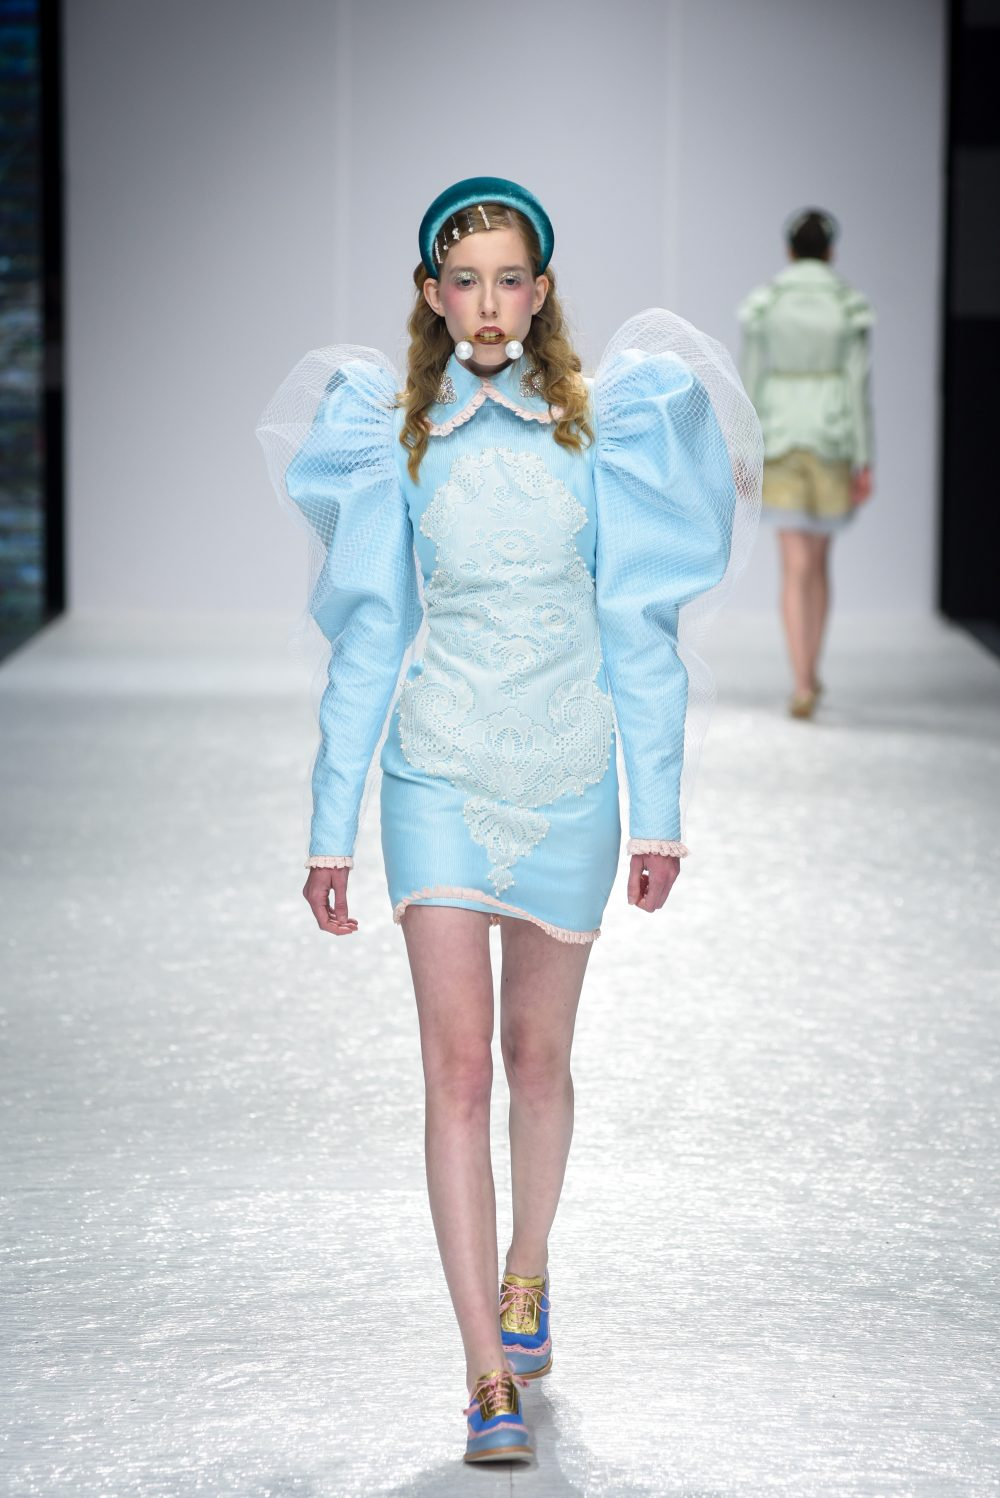 DJT9188 Ana Ljubinkovic e1556018178734 Perwoll Fashion Week: Revije autorske mode i Martini Vesto